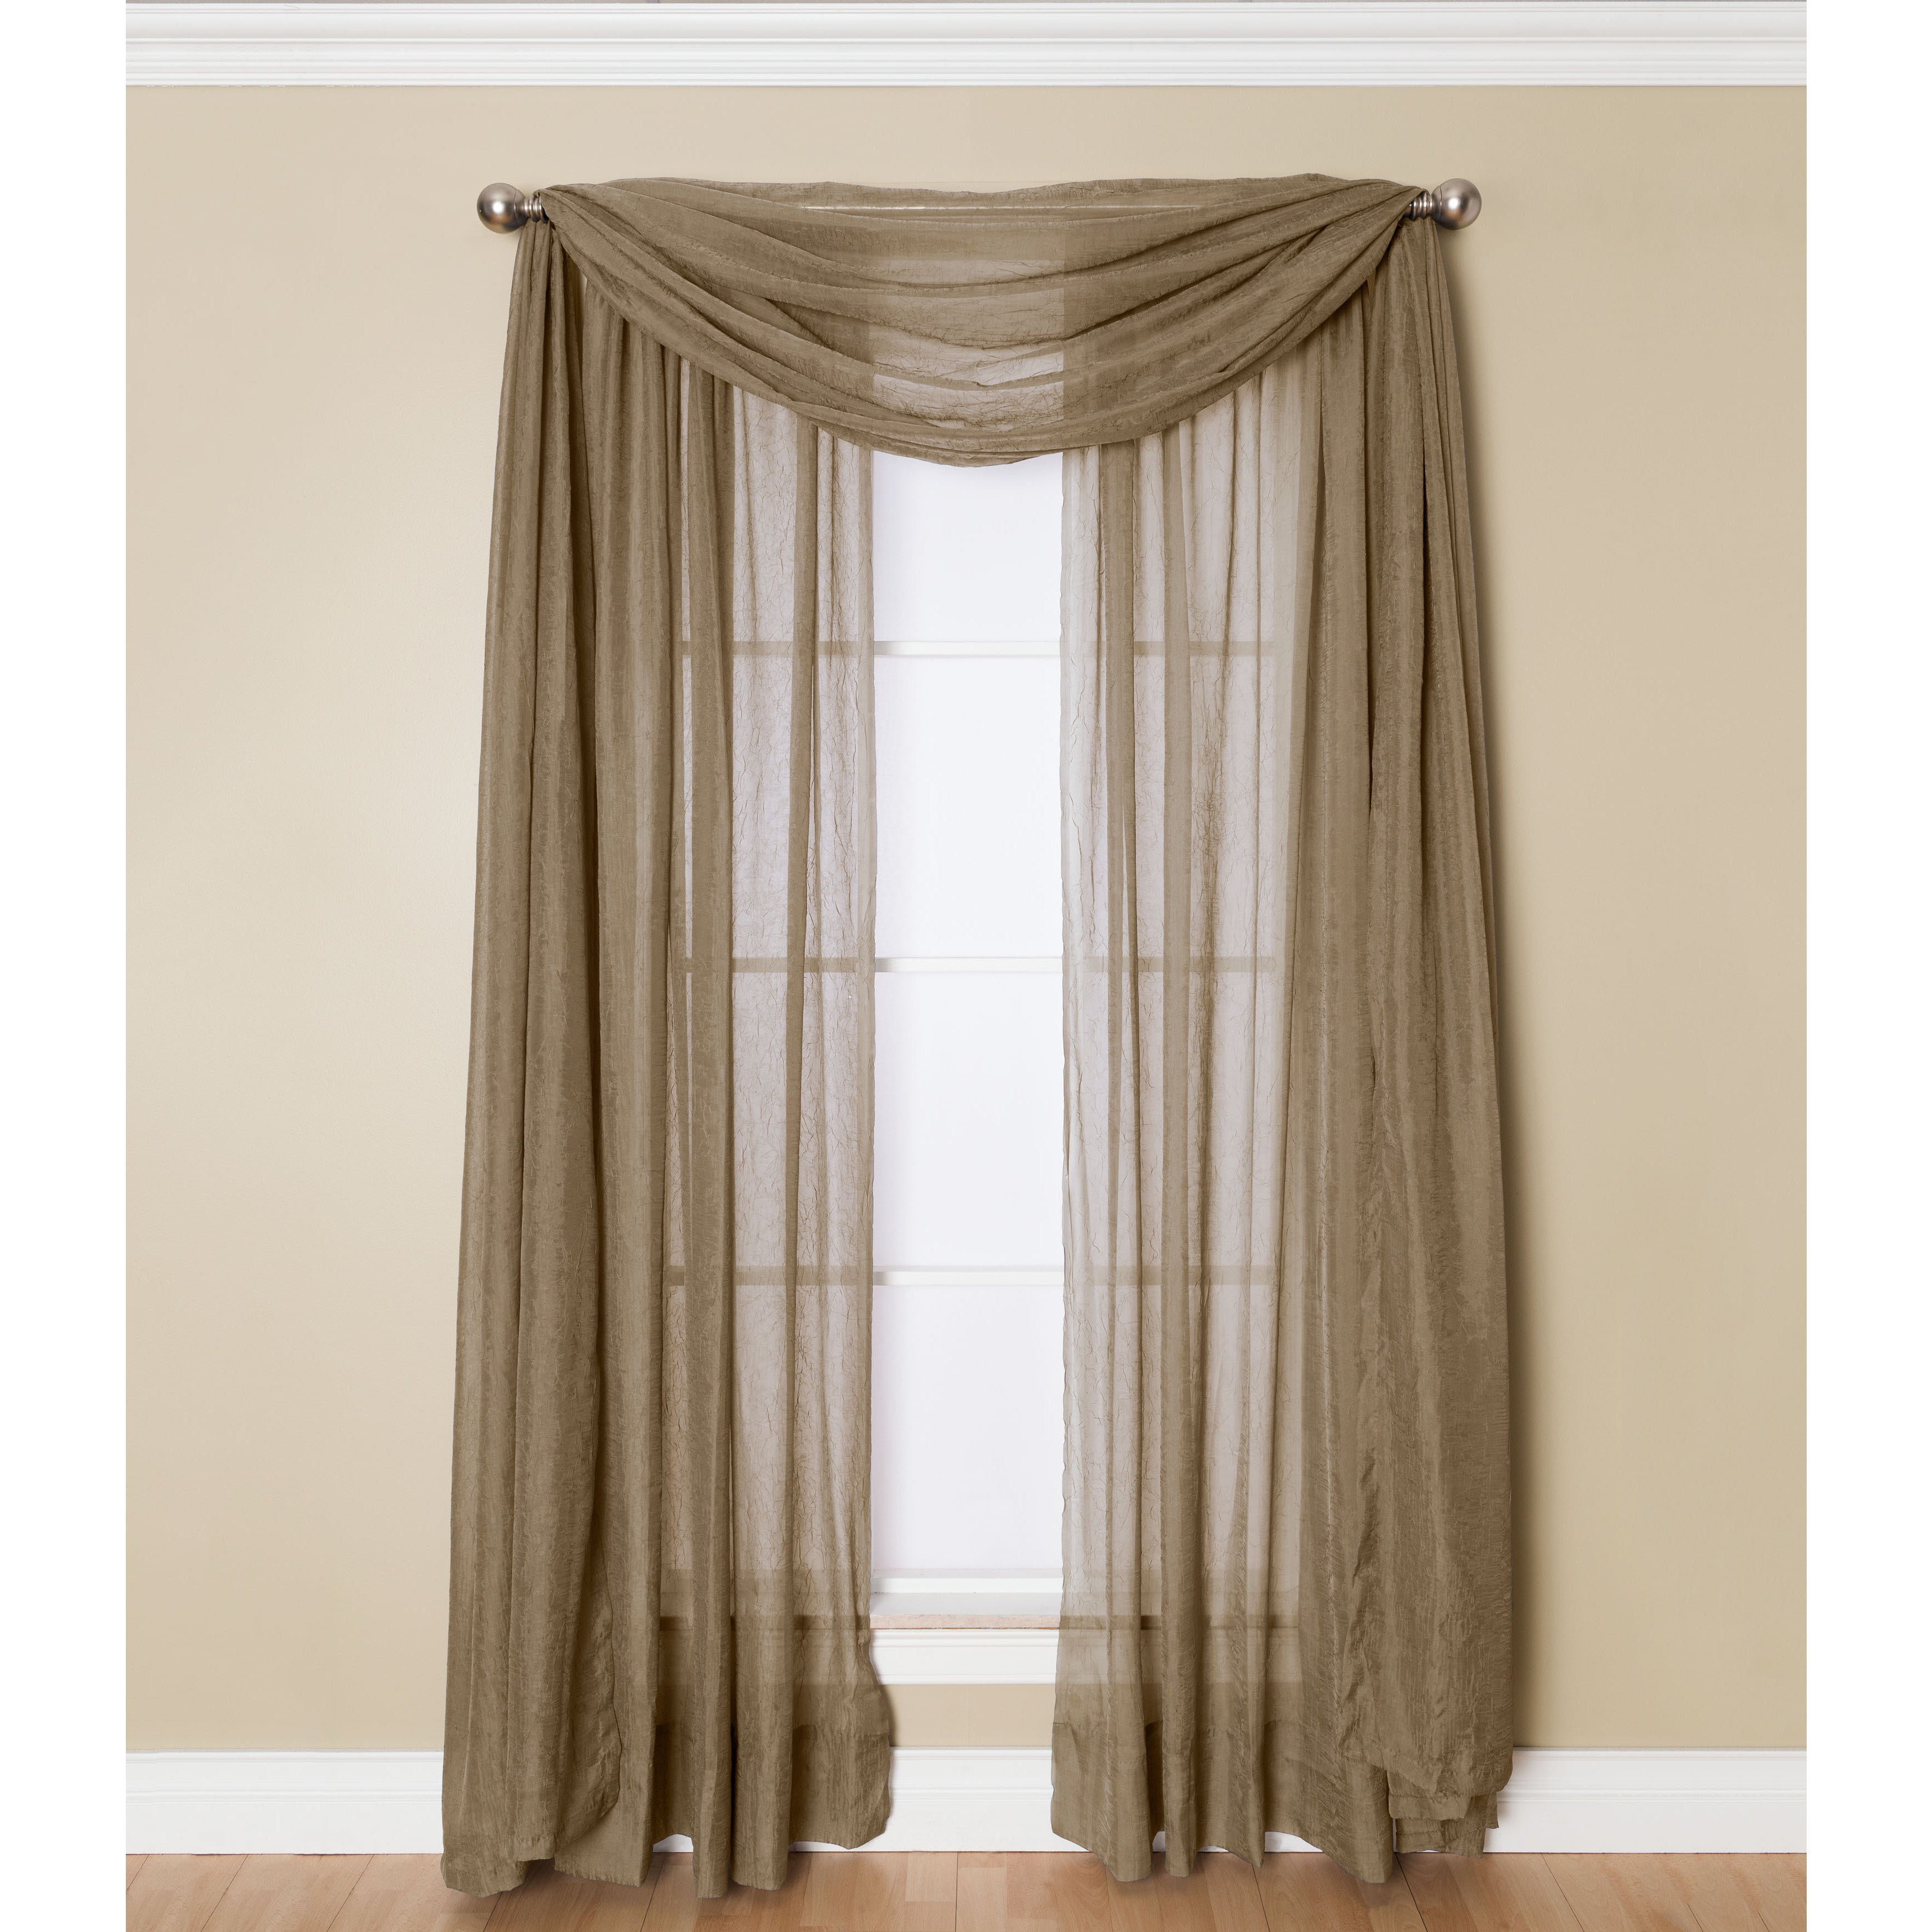 ideas curtain kitchen gray inch striped and short pink home l white traverse rods elegant design monogrammed curtains